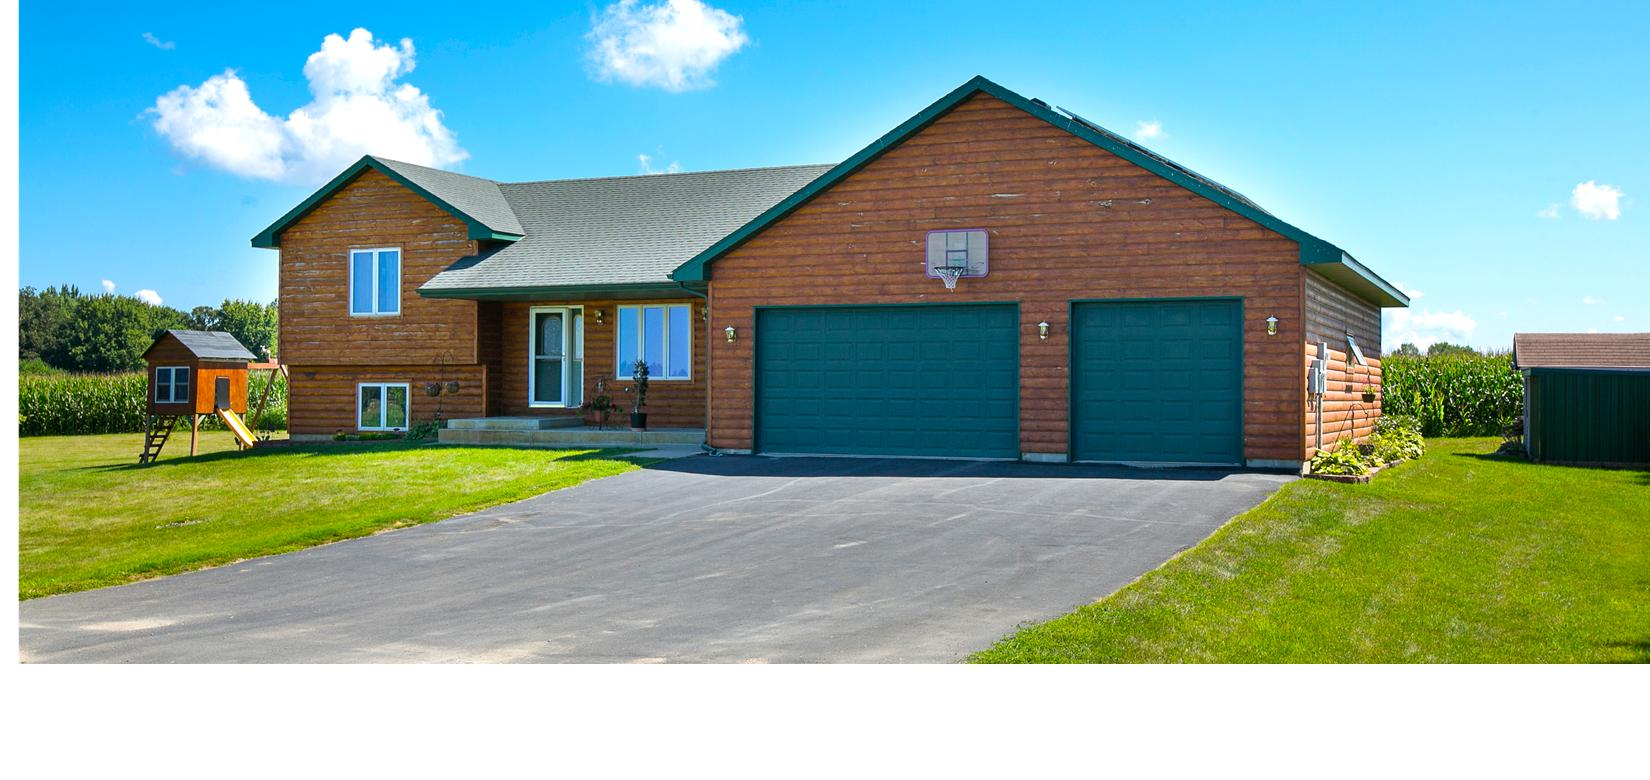 Blog - The Exceptional Home Team- Hamburg Home with Double Deep Garage